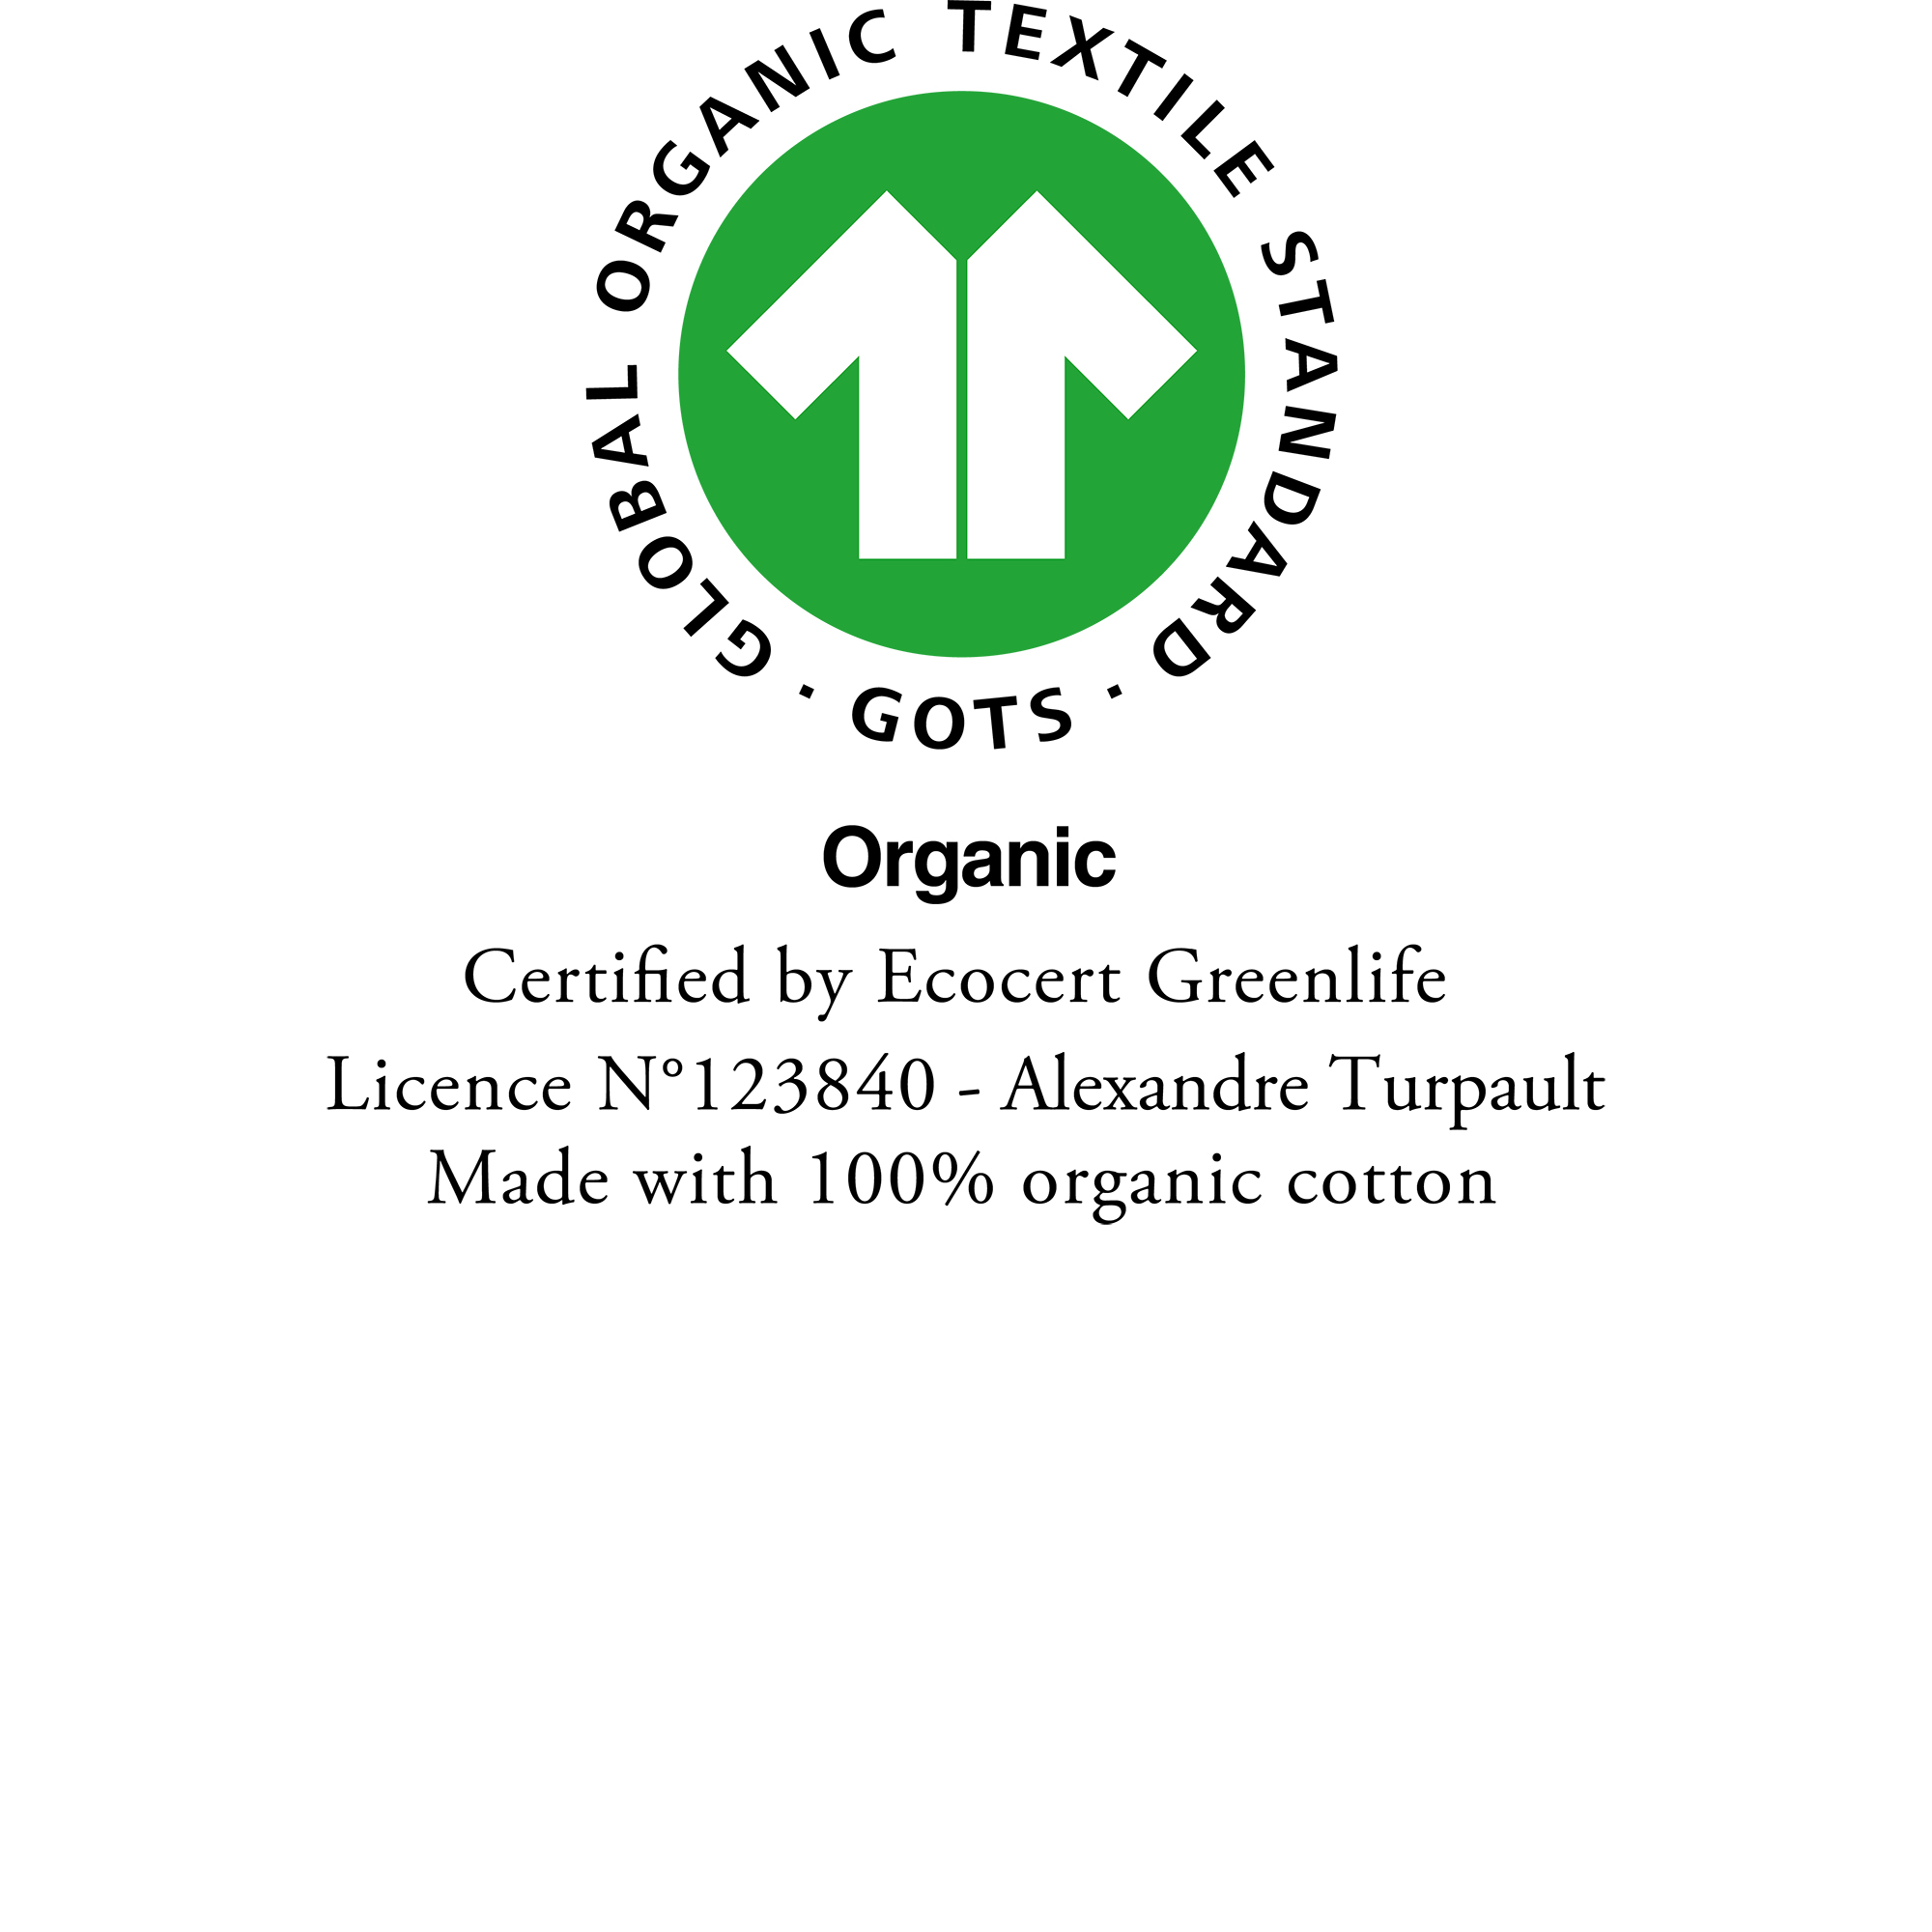 Luxury bath linen from organic farming